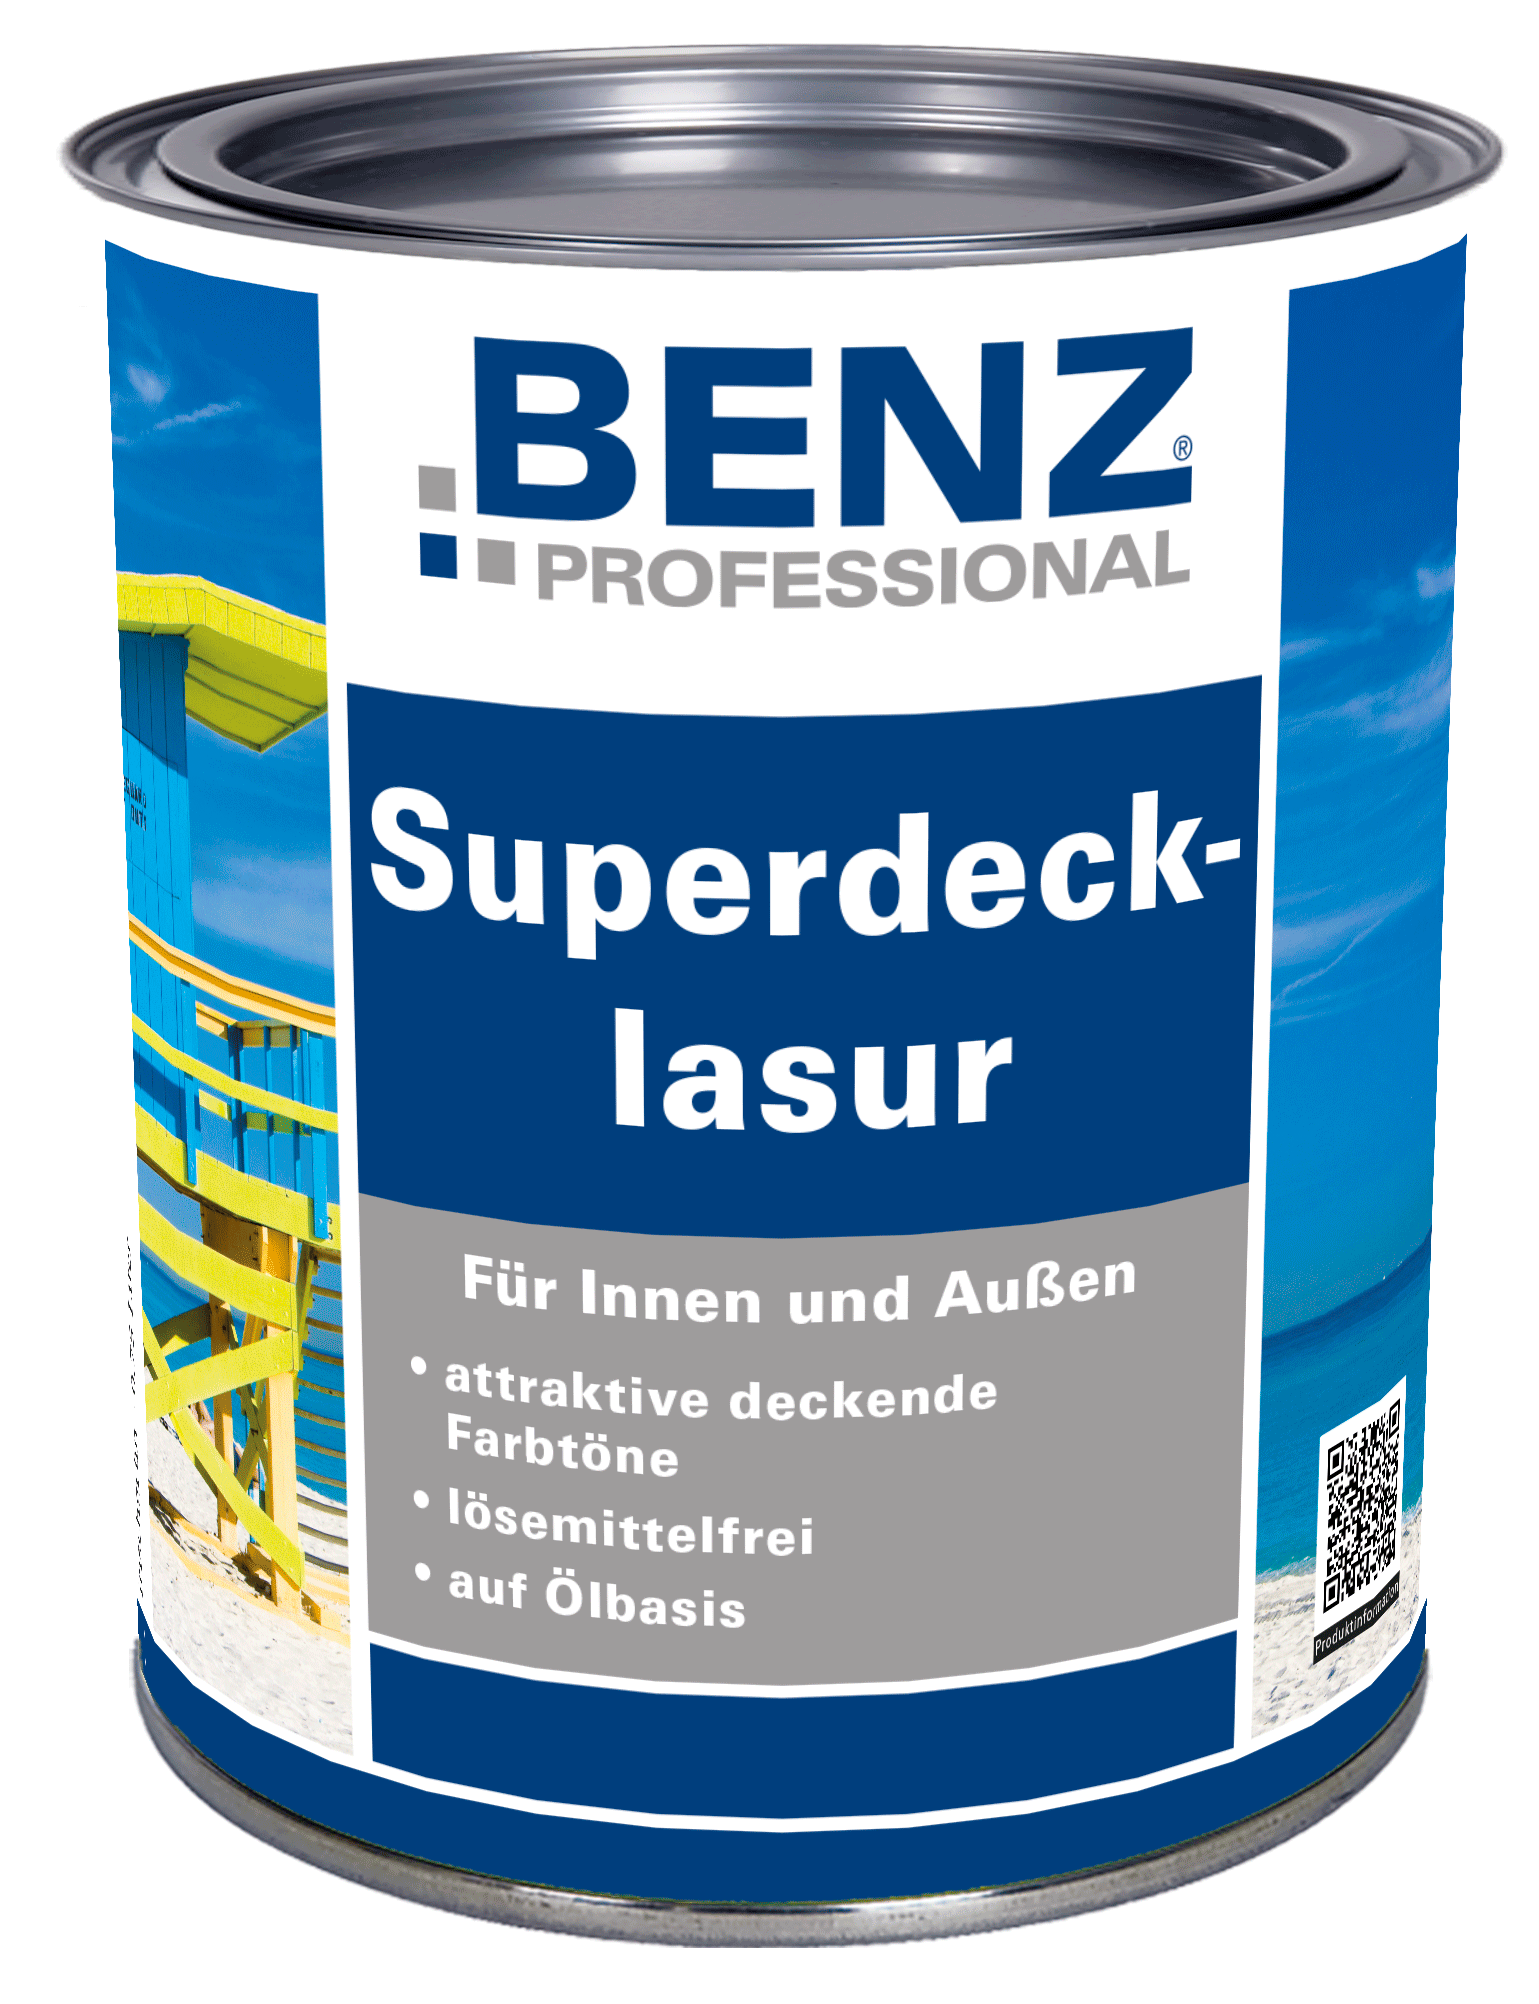 BENZ PROFESSIONAL Superdecklasur